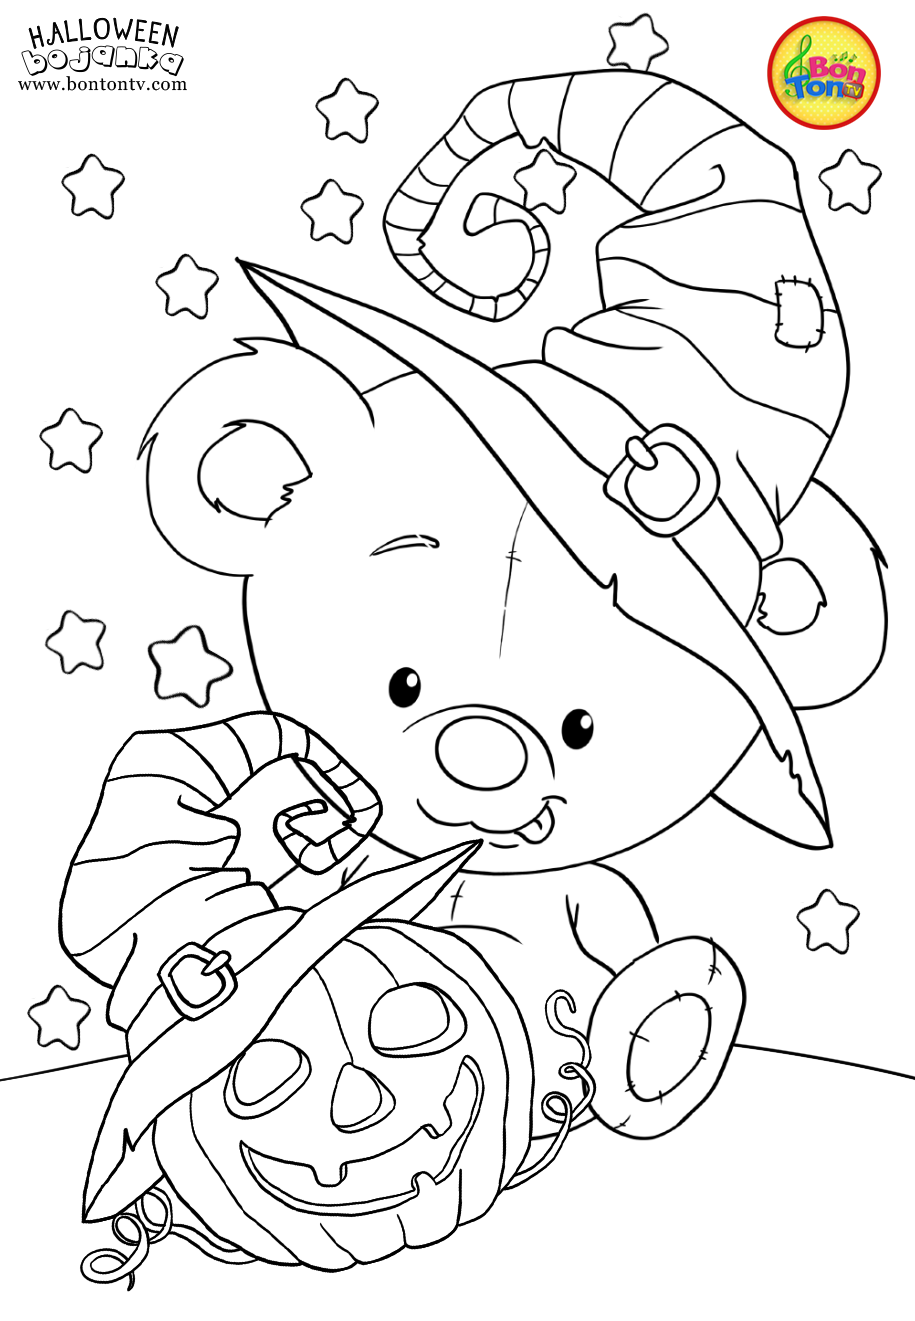 Halloween Coloring Pages for Kids - Free Preschool Printables - Noć Vještica Bojanke - Cute Halloween Coloring Books by BonTon TV - Non Scary Halloween Crafts - Halloween Cuties - bojanke za printanje - Non Scary Halloween Pumpkins, Bats, Black Cat, Witch, Vampire, Trick or Treat, Candy #pumpkincraftspreschool